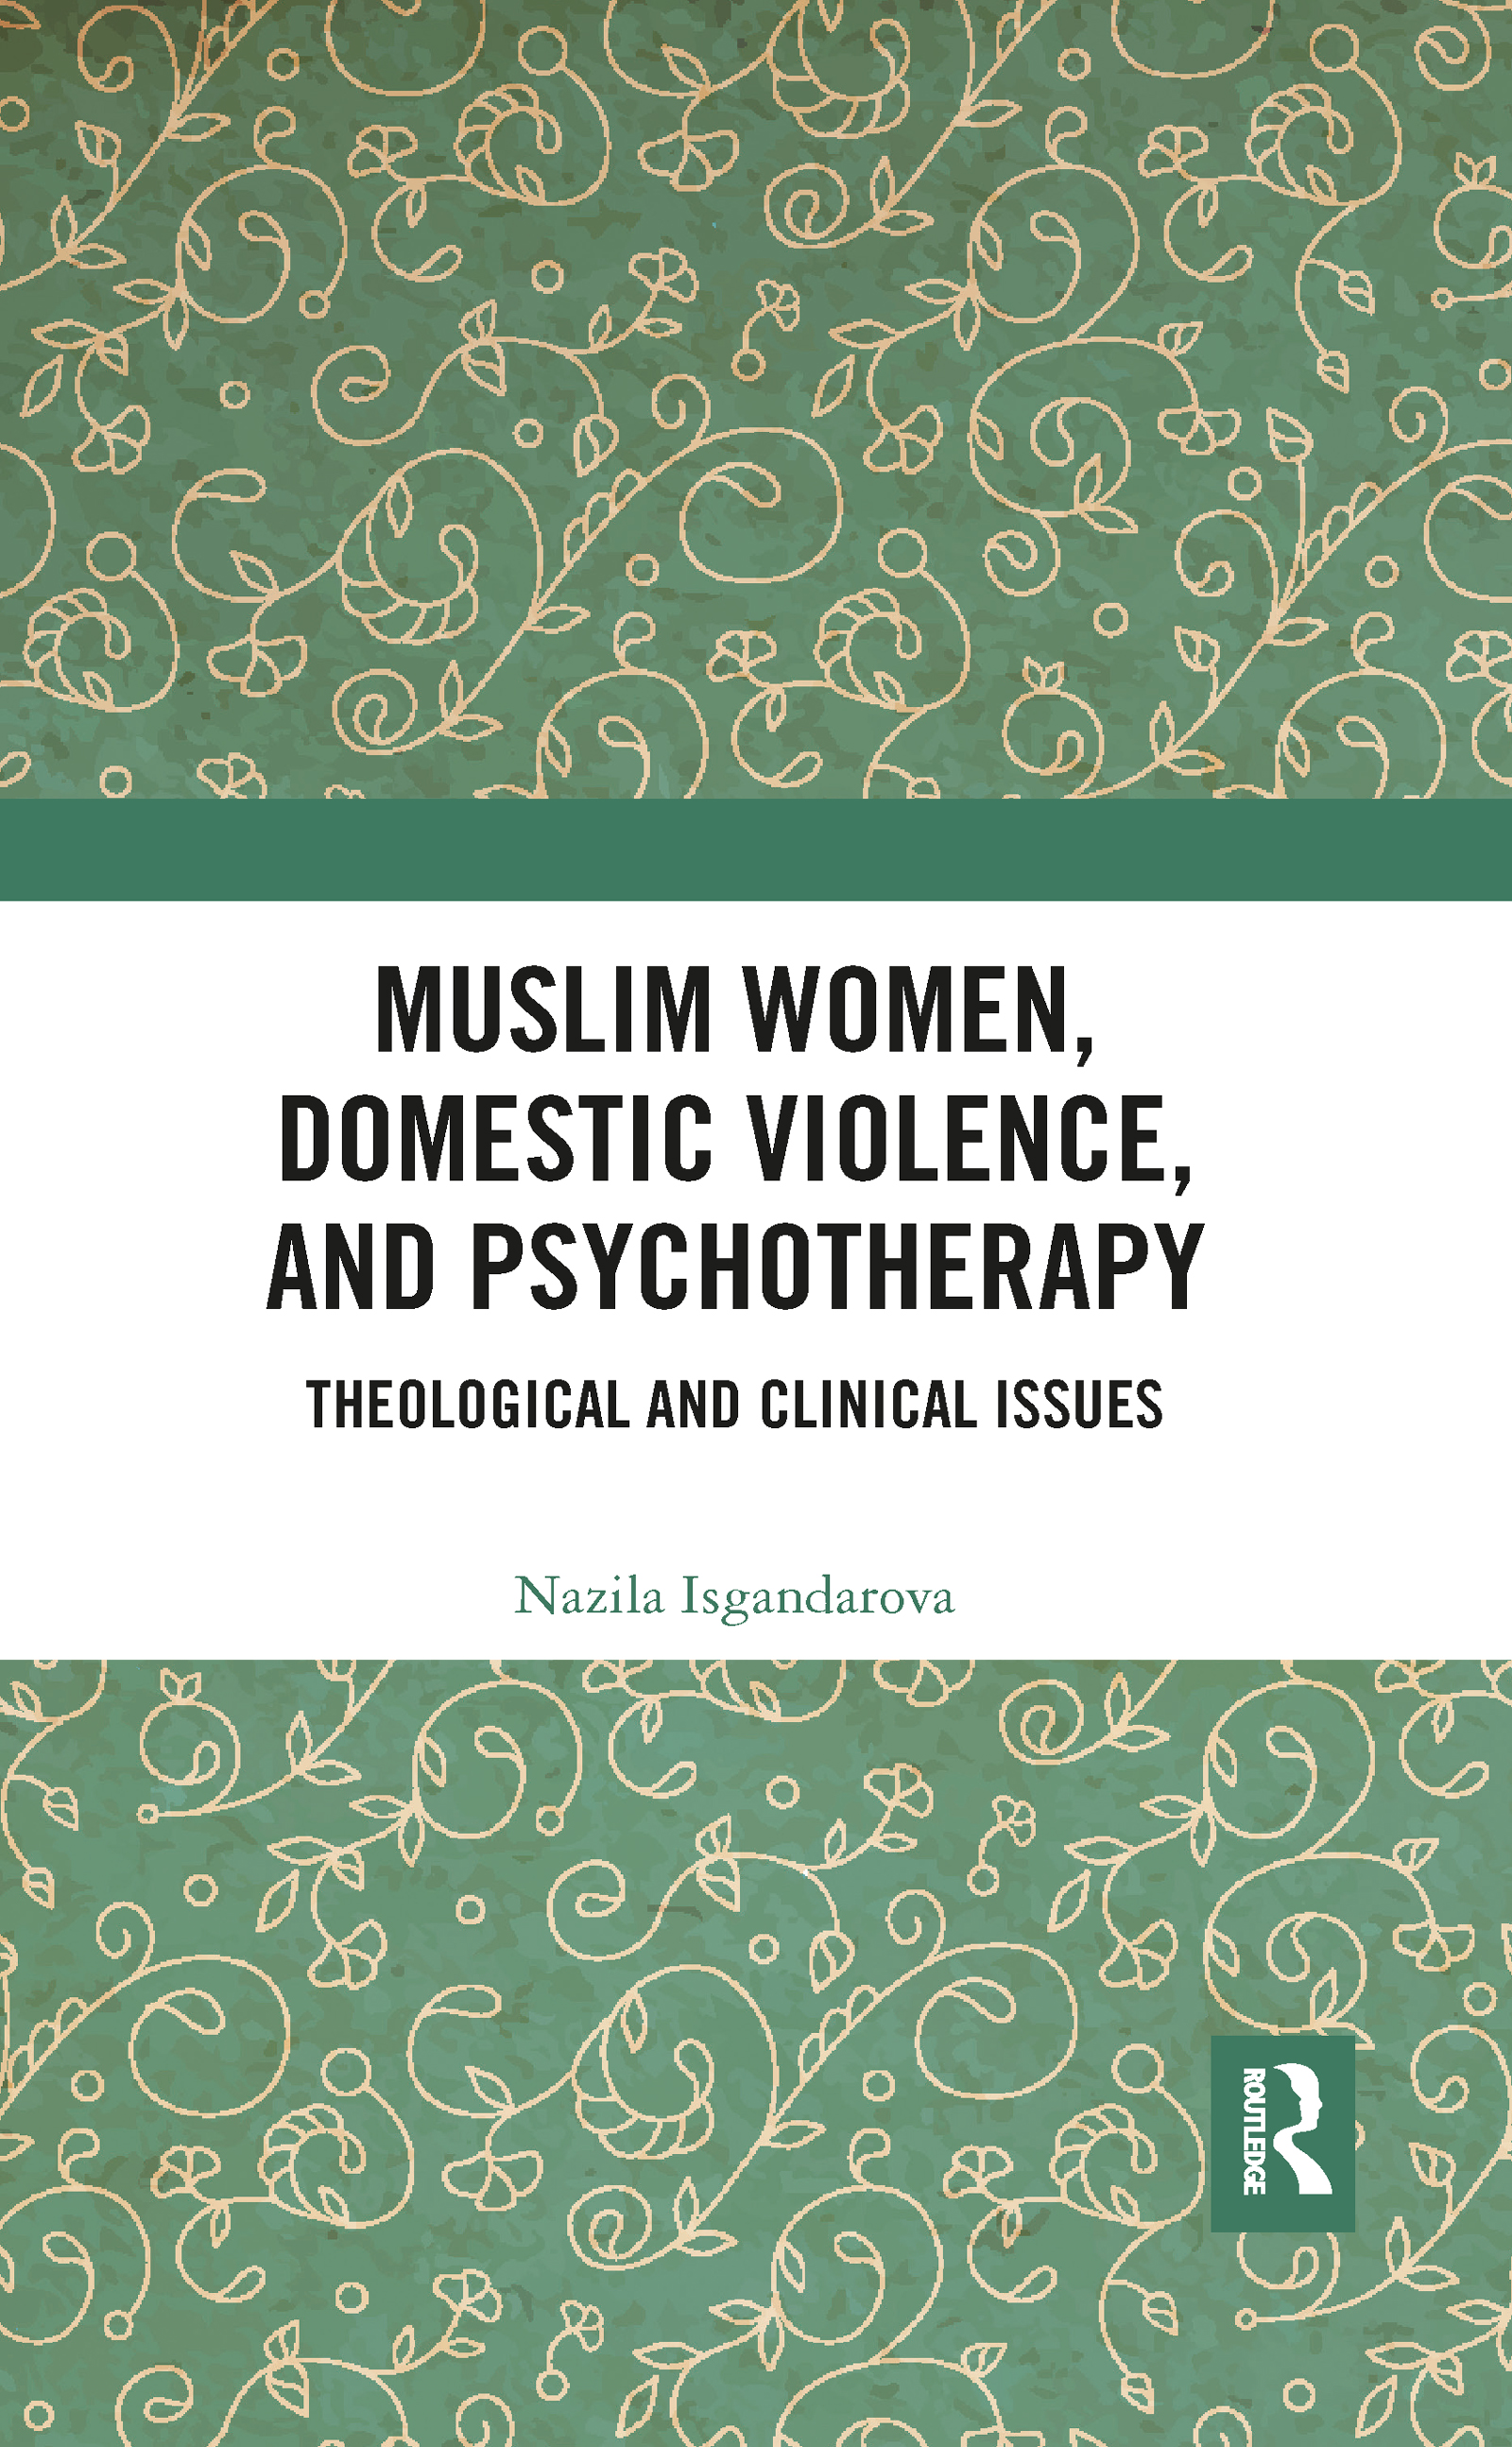 Muslim Women, Domestic Violence, and Psychotherapy